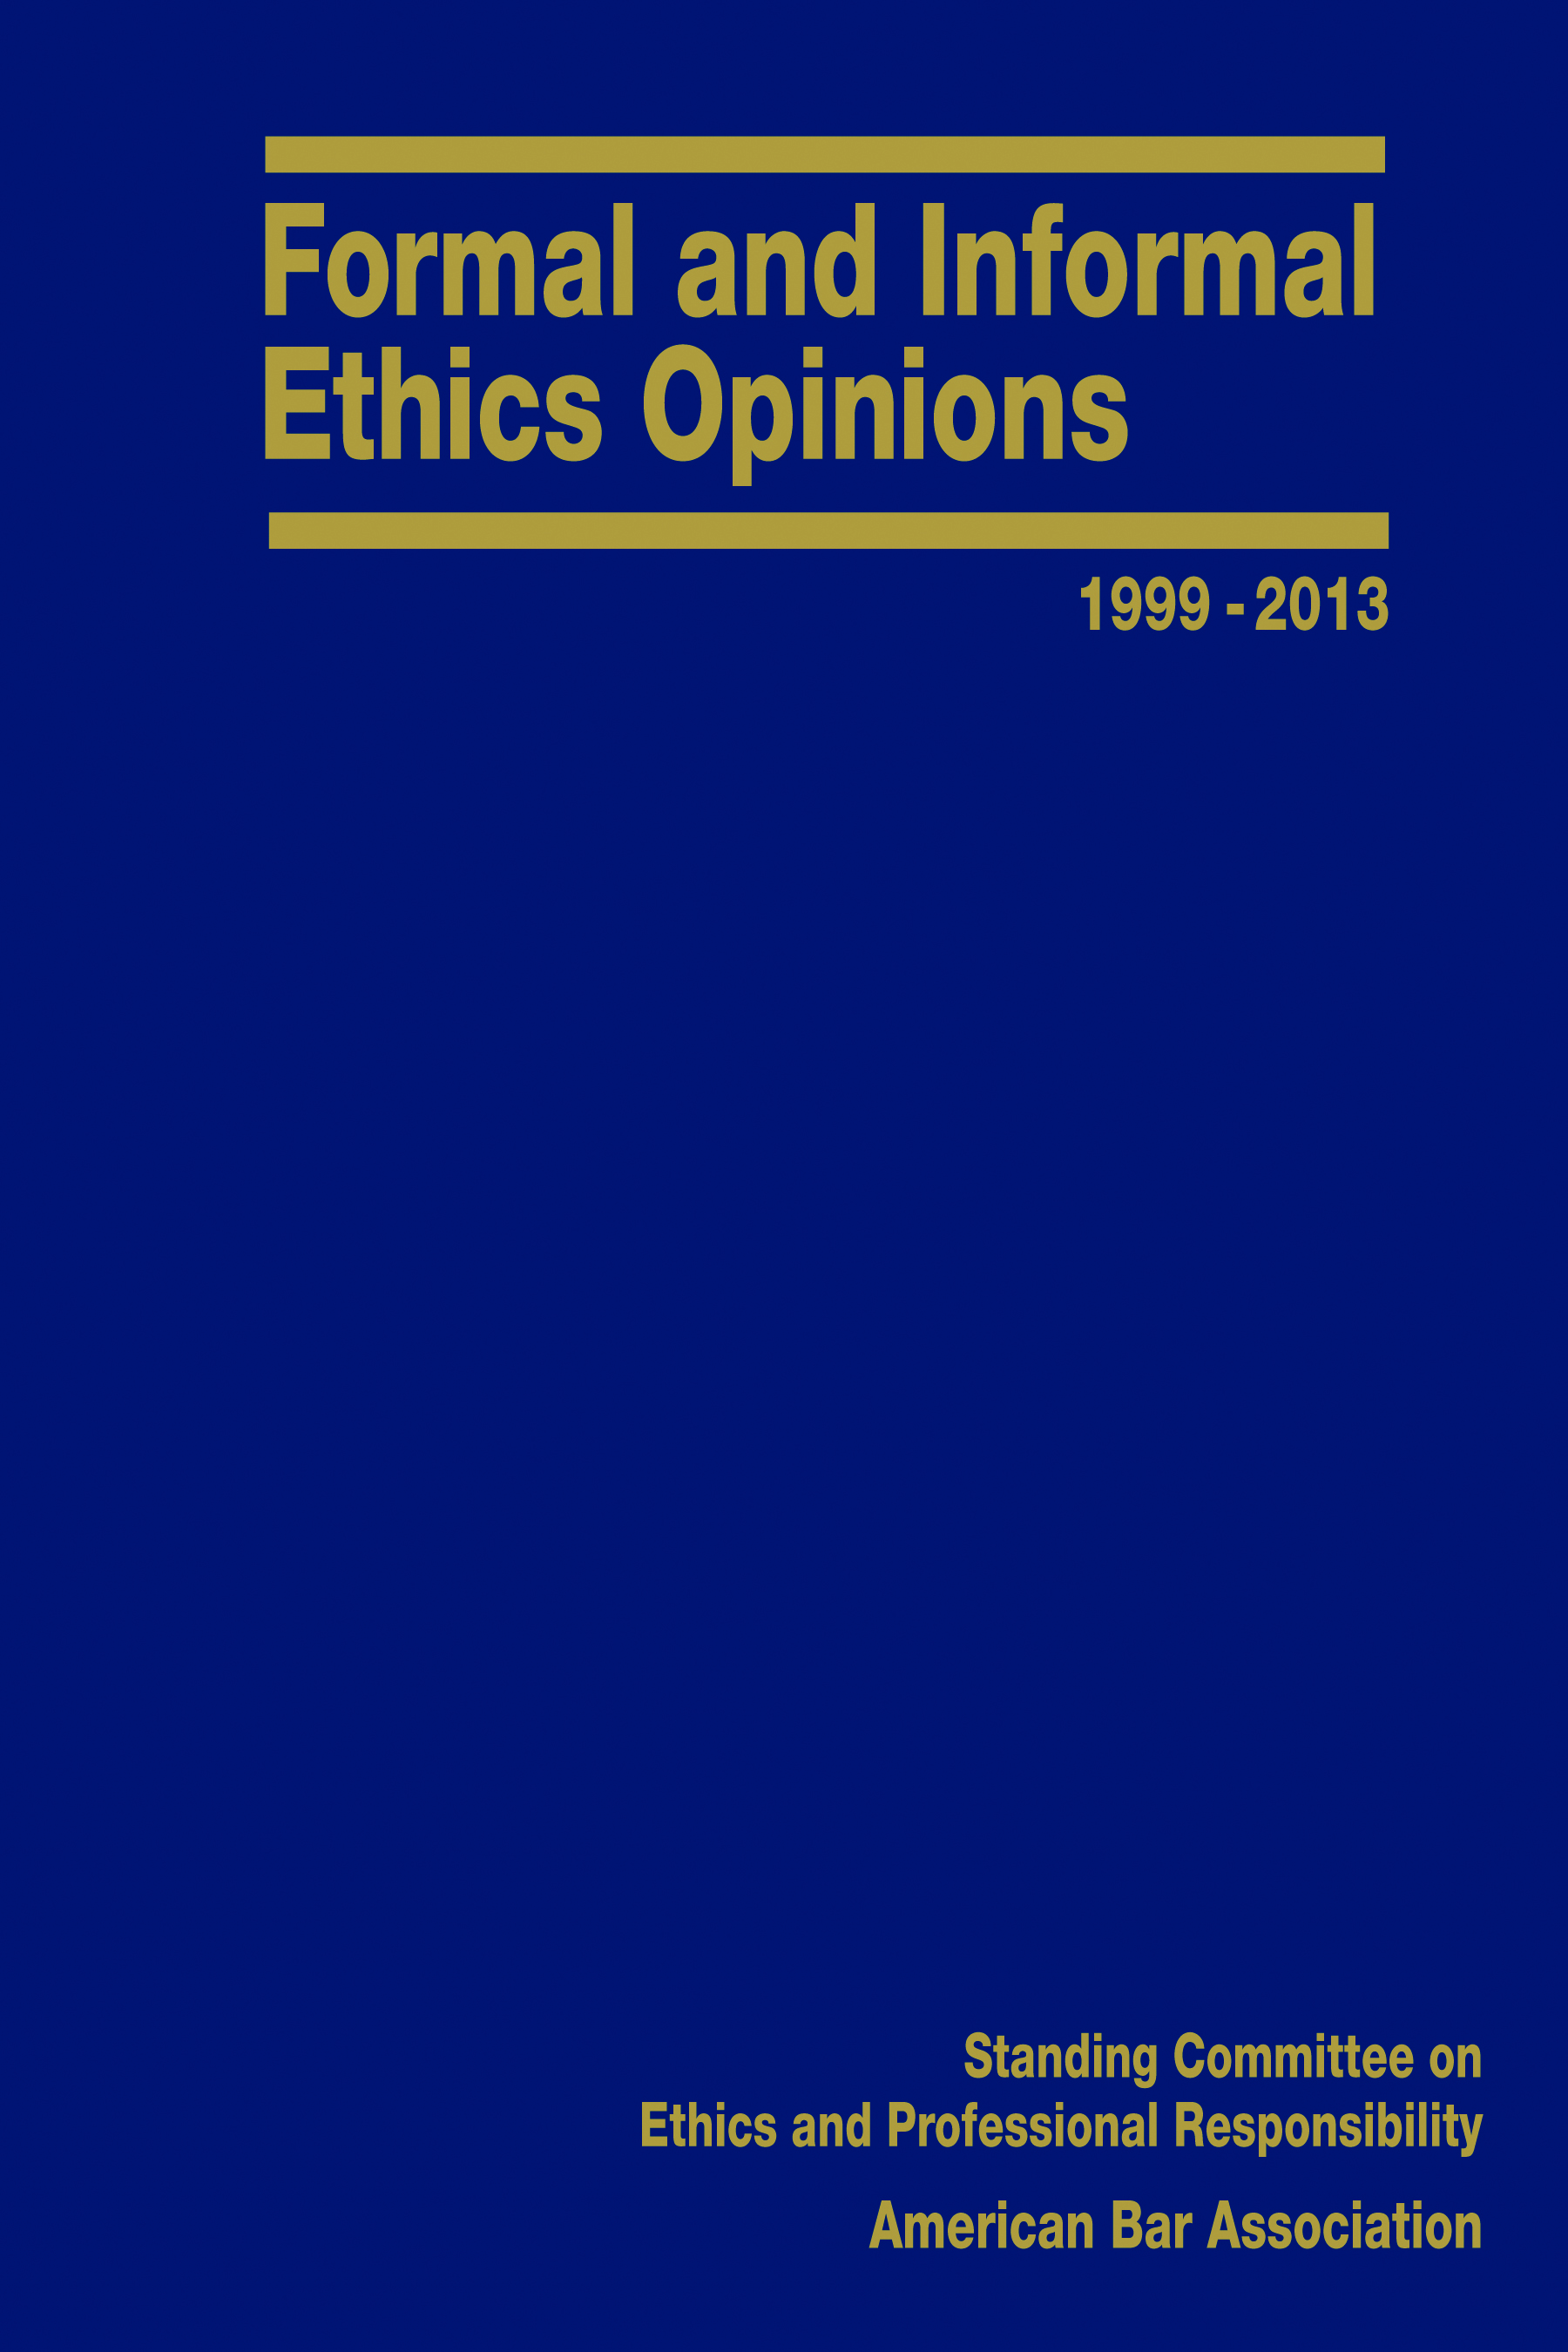 Formal Ethics Opinions 1999-2013